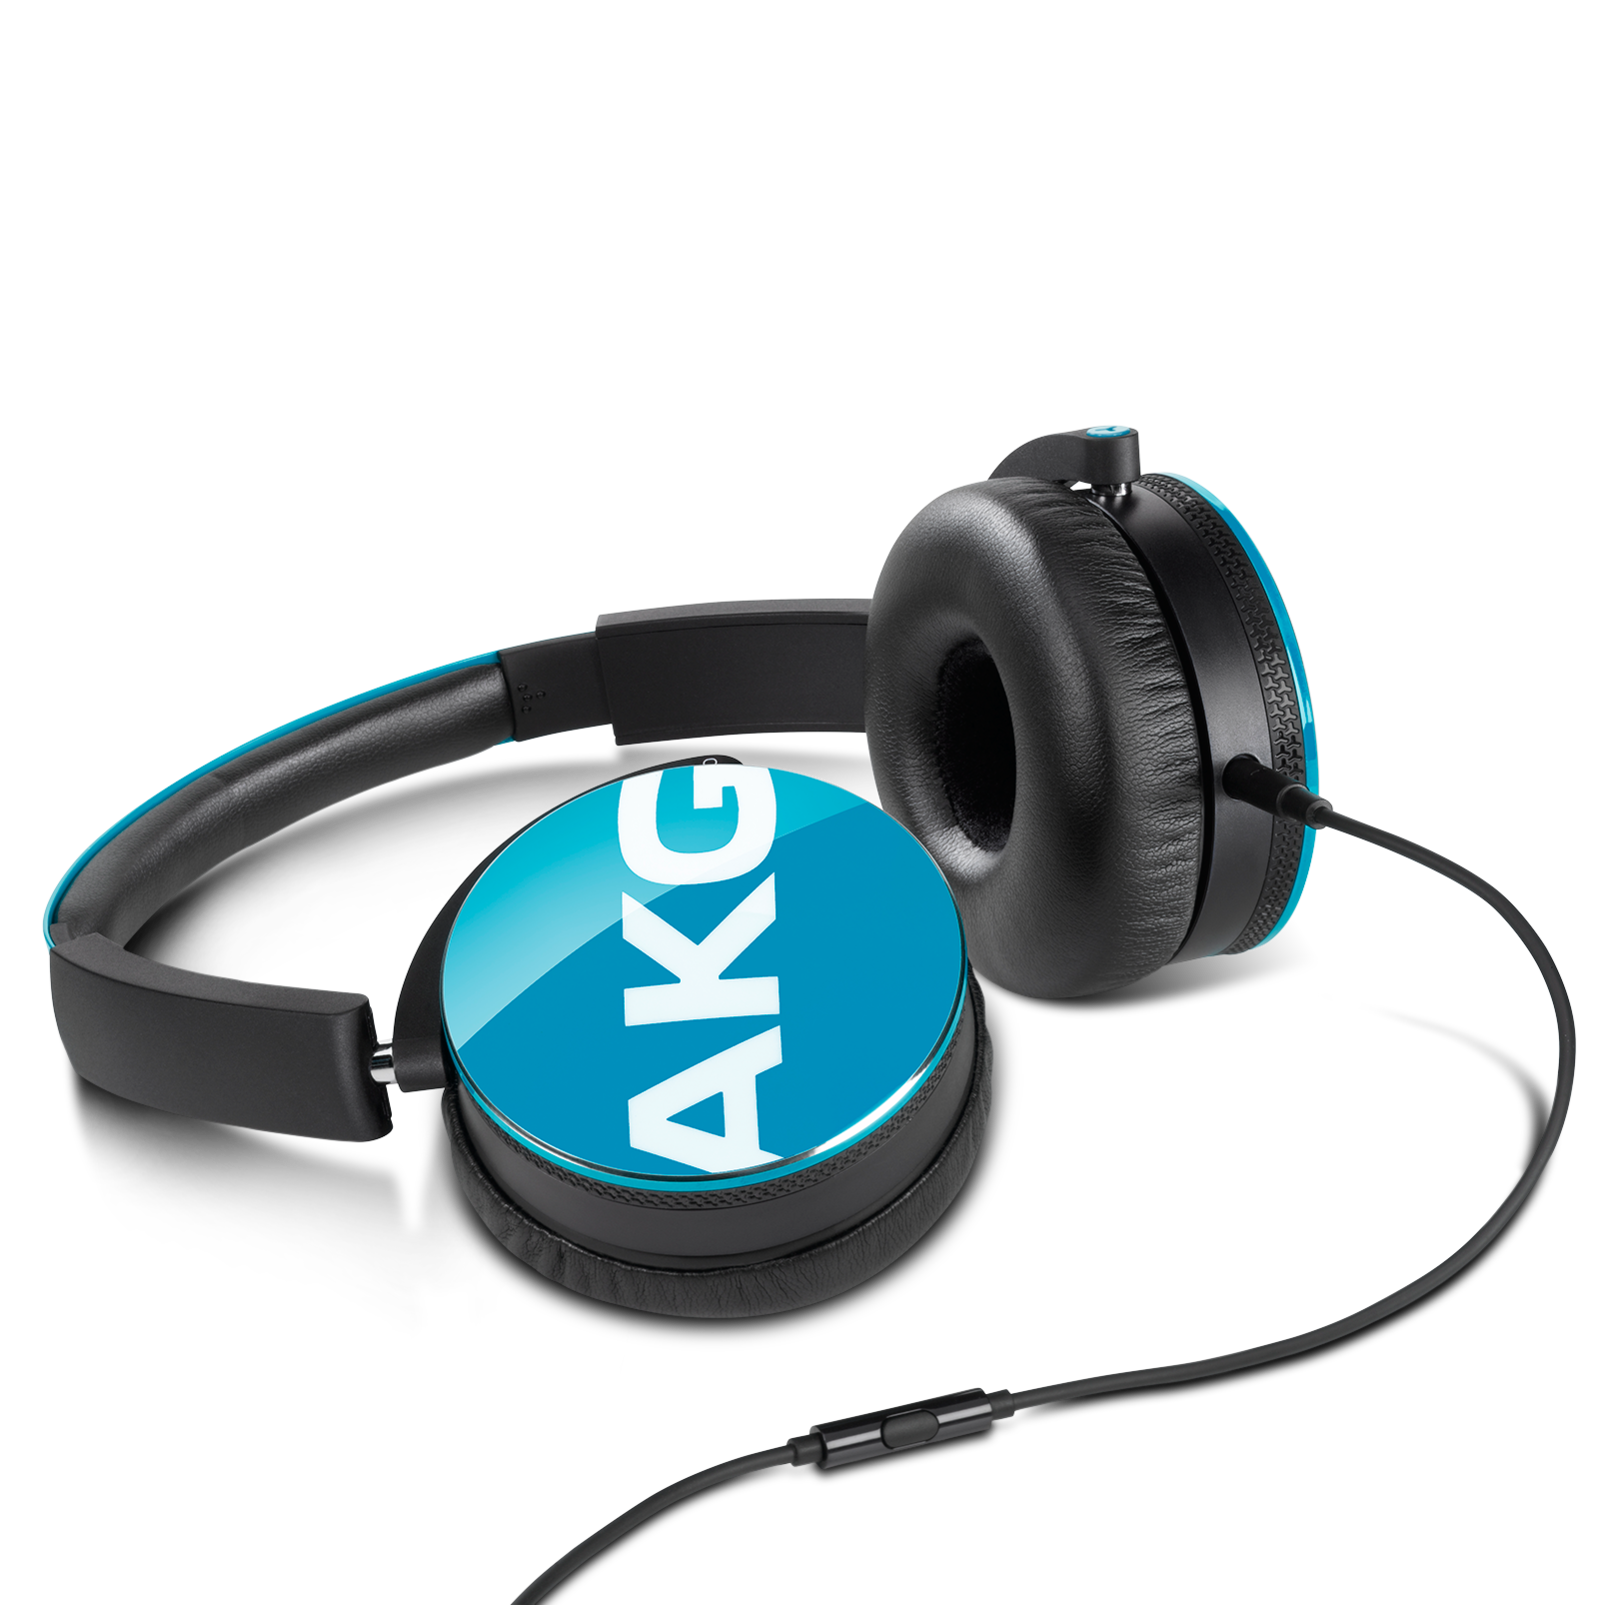 Y50 - Blue - On-ear headphones with AKG-quality sound, smart styling, snug fit and detachable cable with in-line remote/mic - Detailshot 2